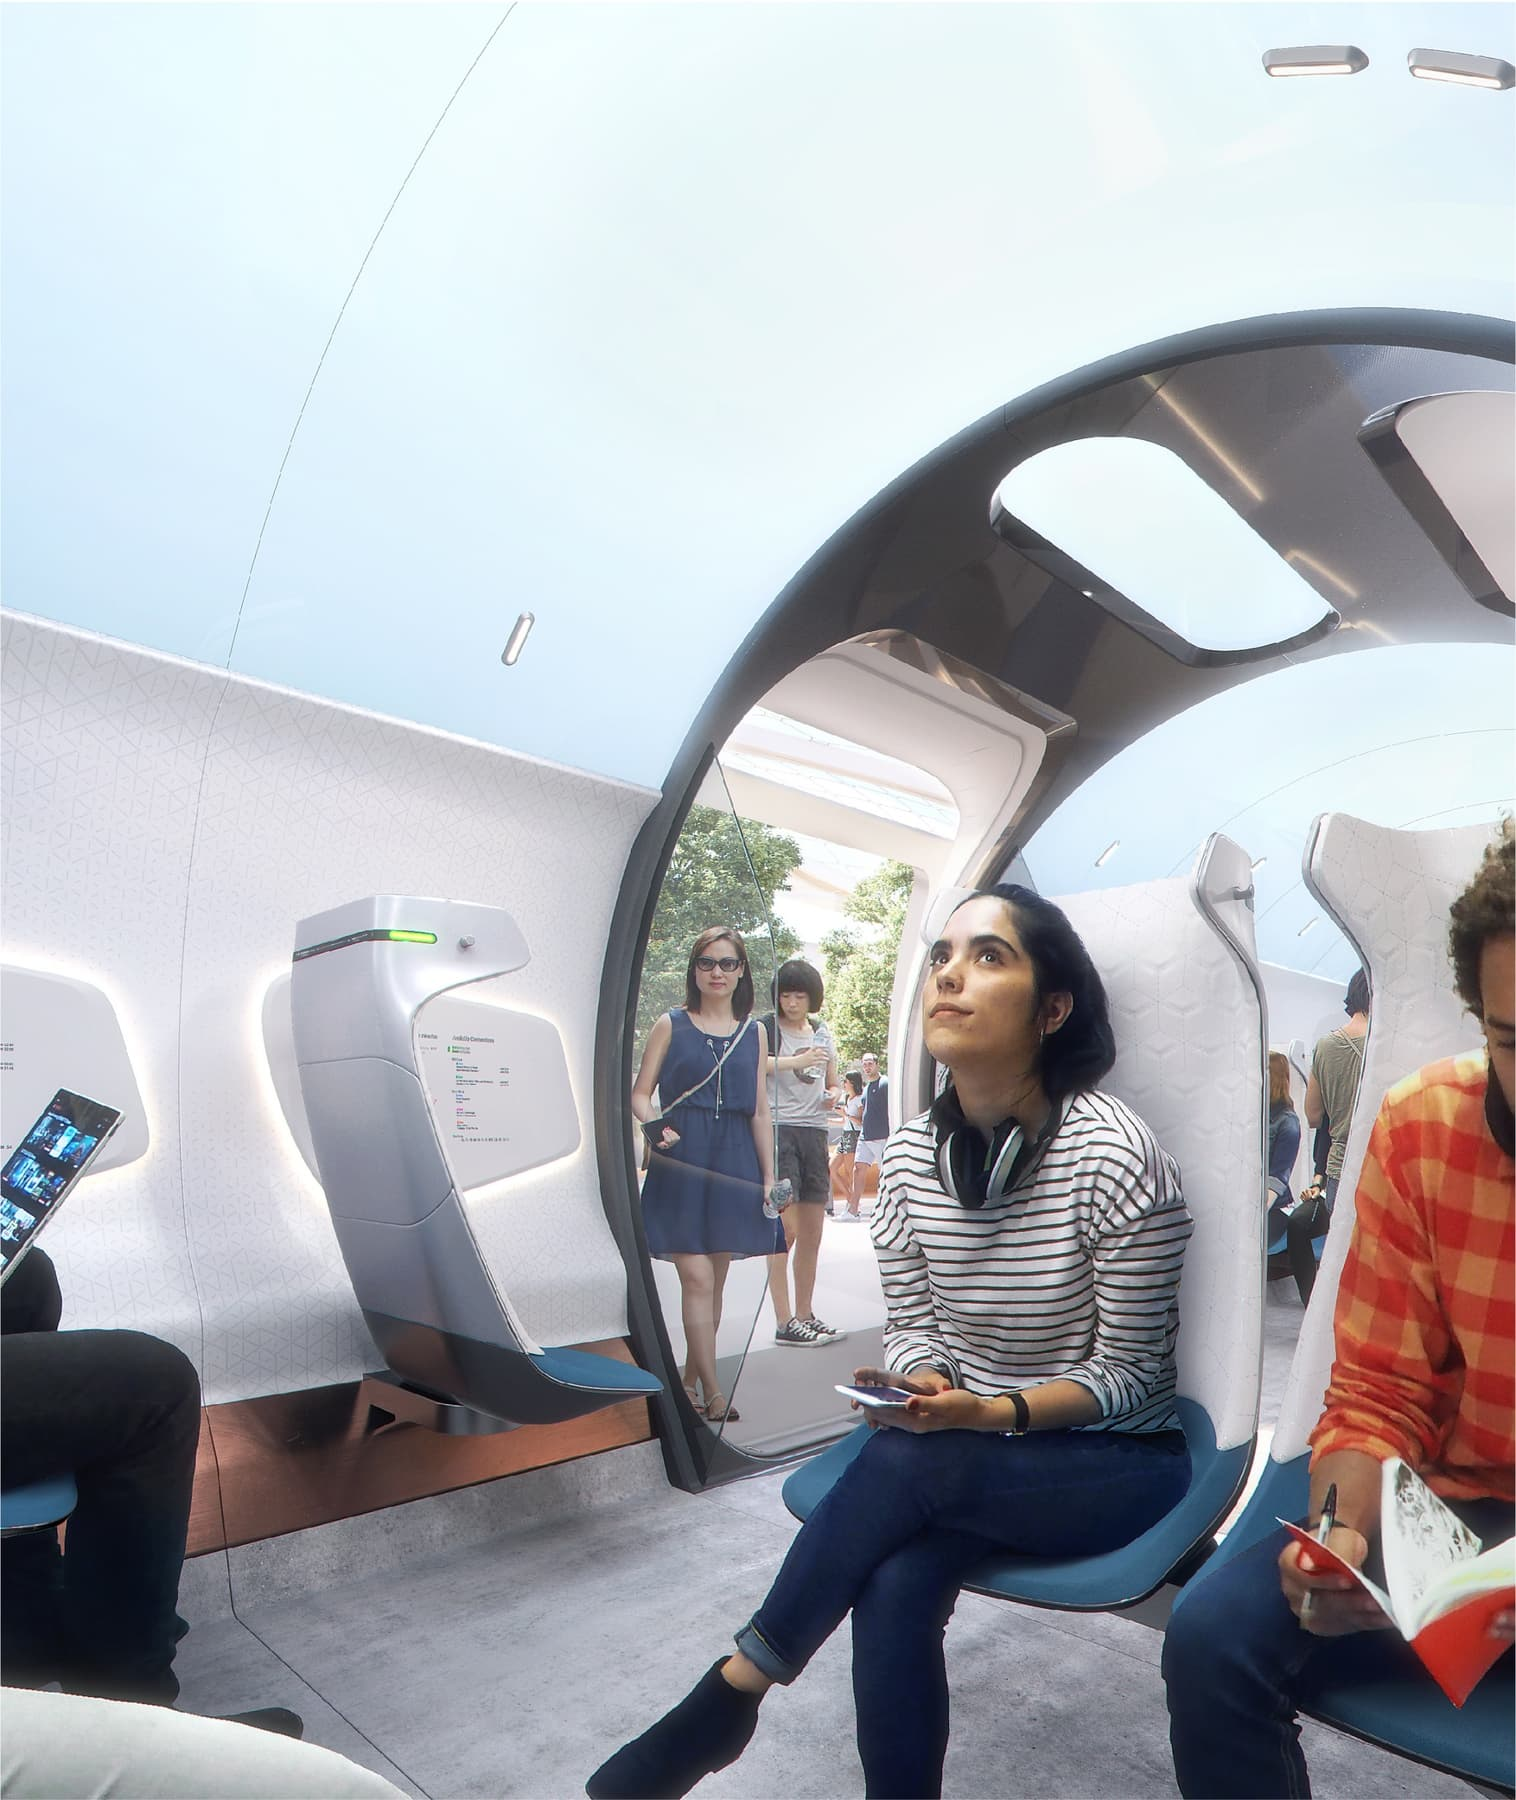 The Netherlands commits to hyperloop in pursuit of clean transport future